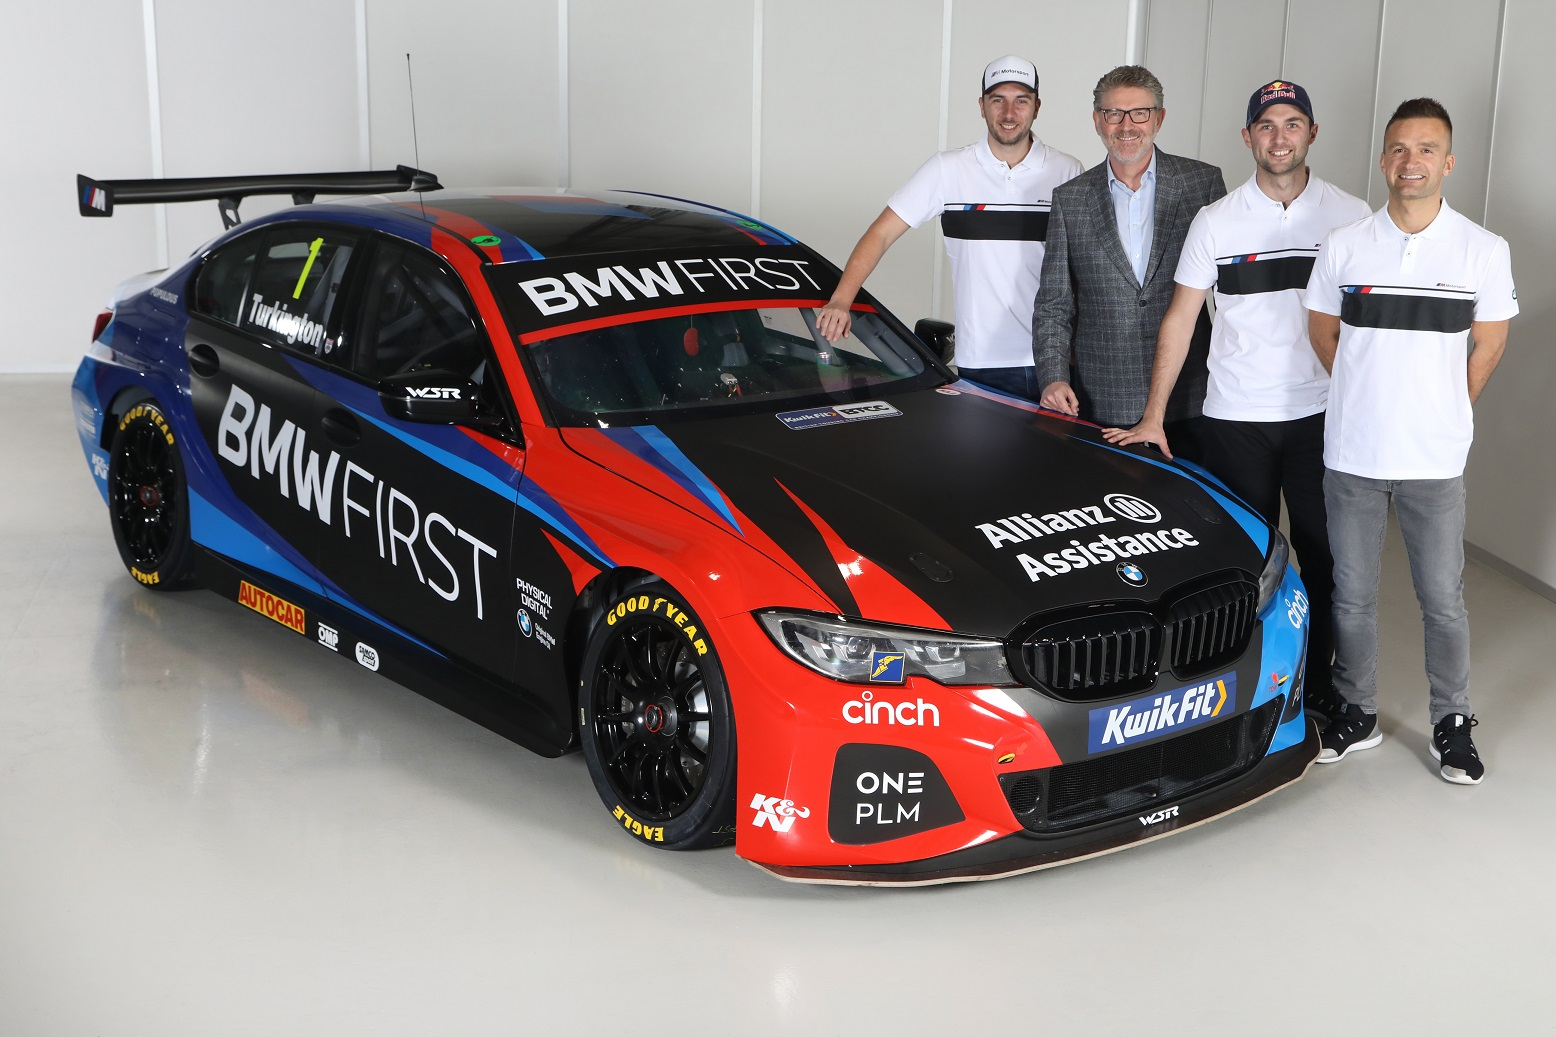 TEAM BMW REVEAL NEW LOOK FOR 2020